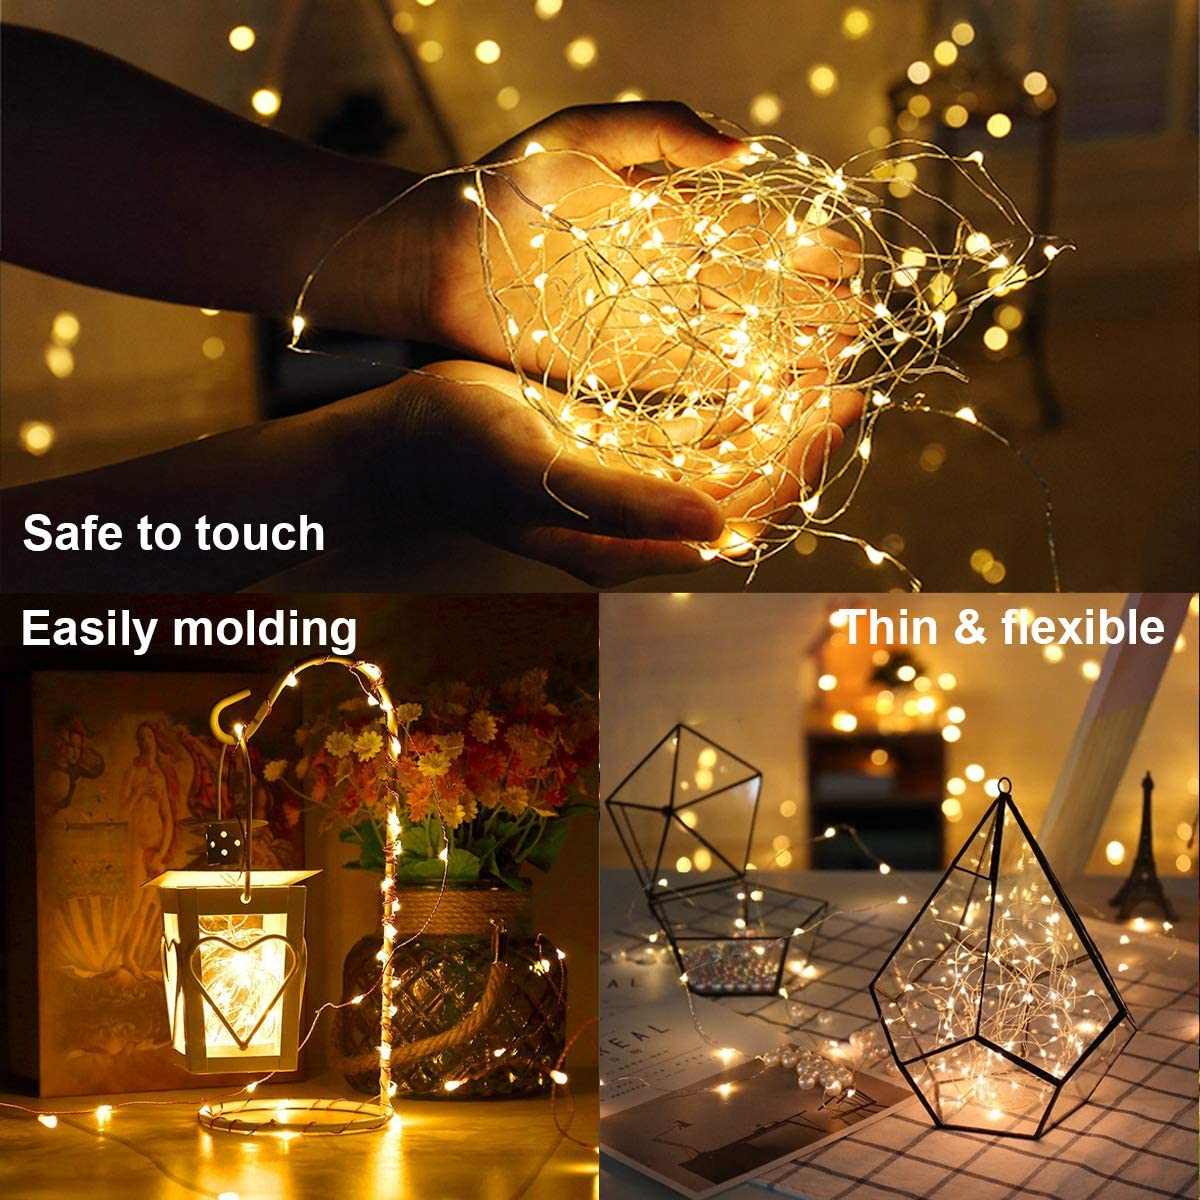 Amazon.com: Innotree - Guirnalda de luces brillantes para ...